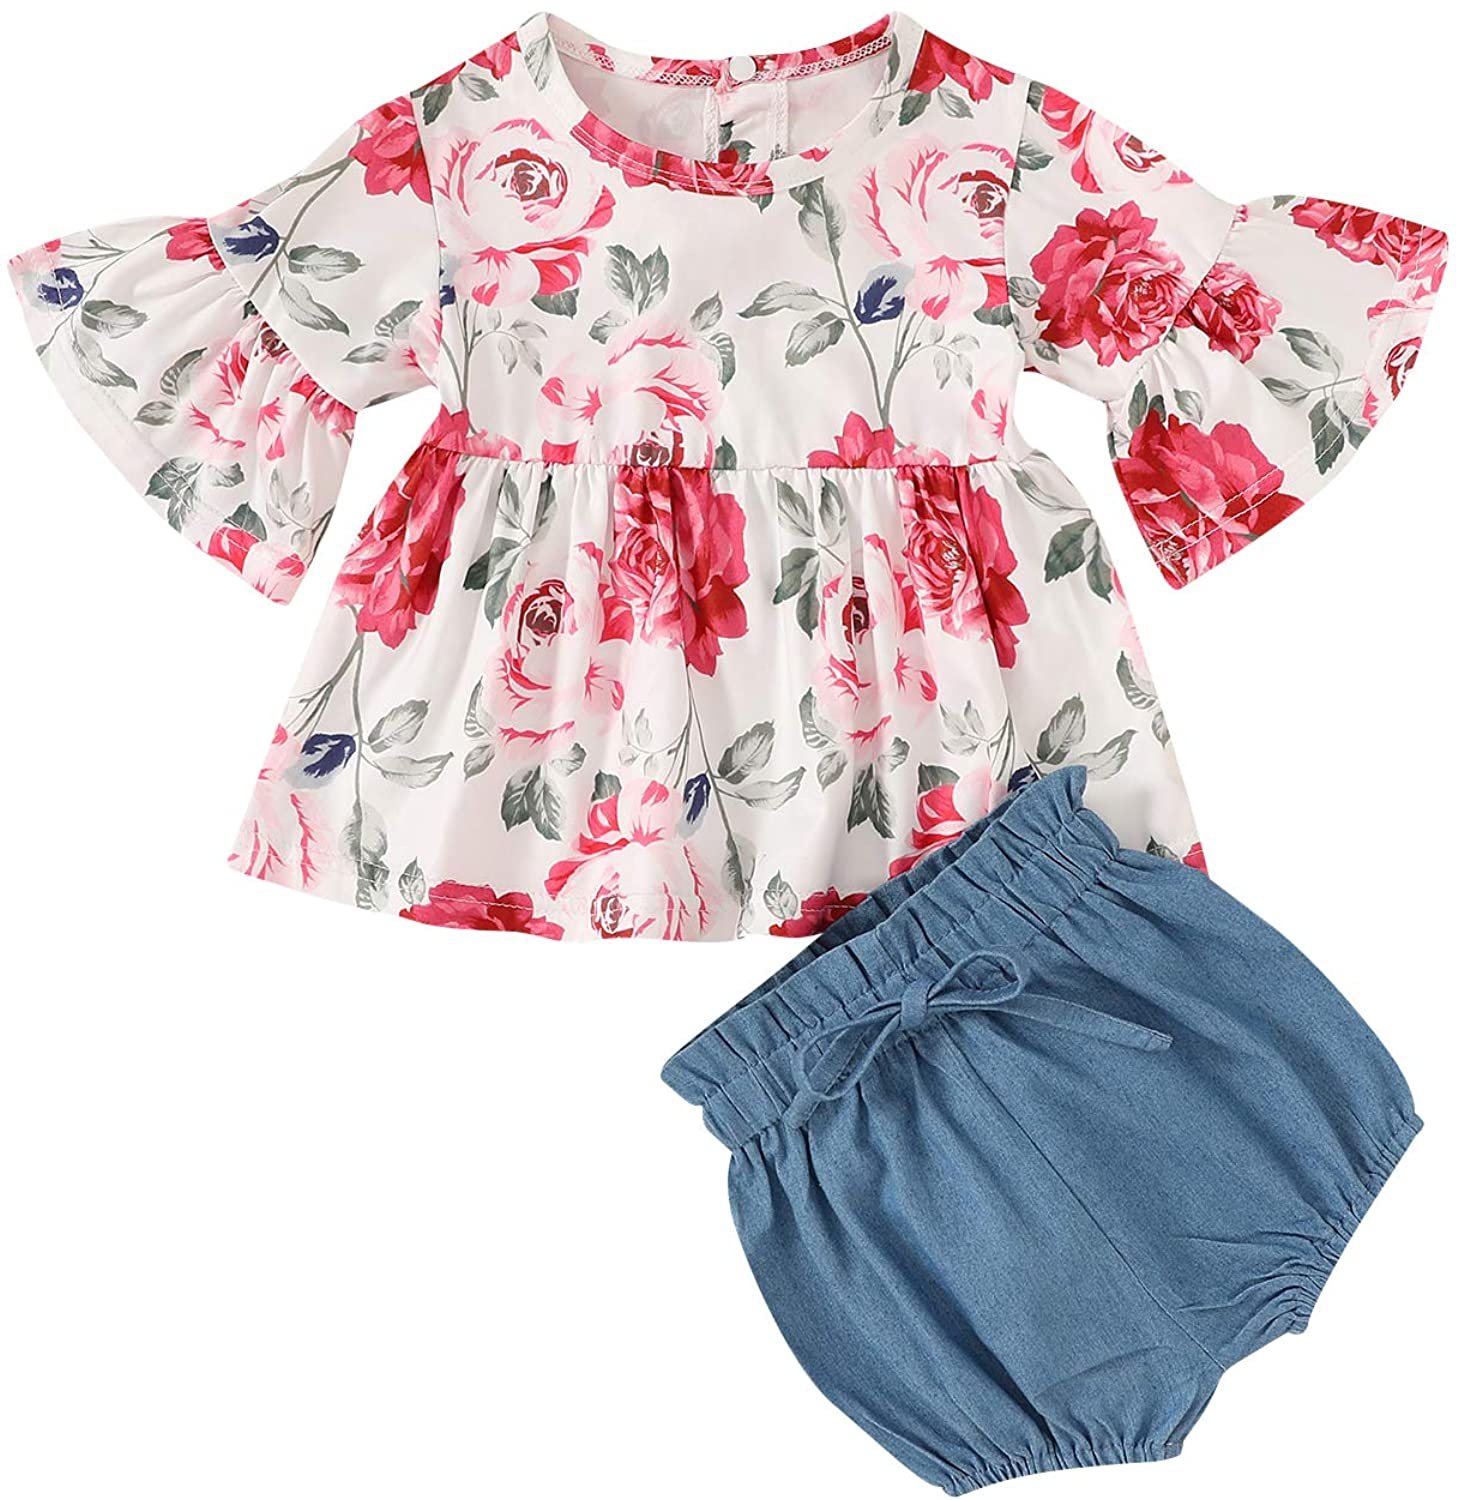 Kids Toddler Baby Girls Summer Short Set Floral Bell-Sleeve Shirt Dress Solid Color Shorts Clothes Outfits